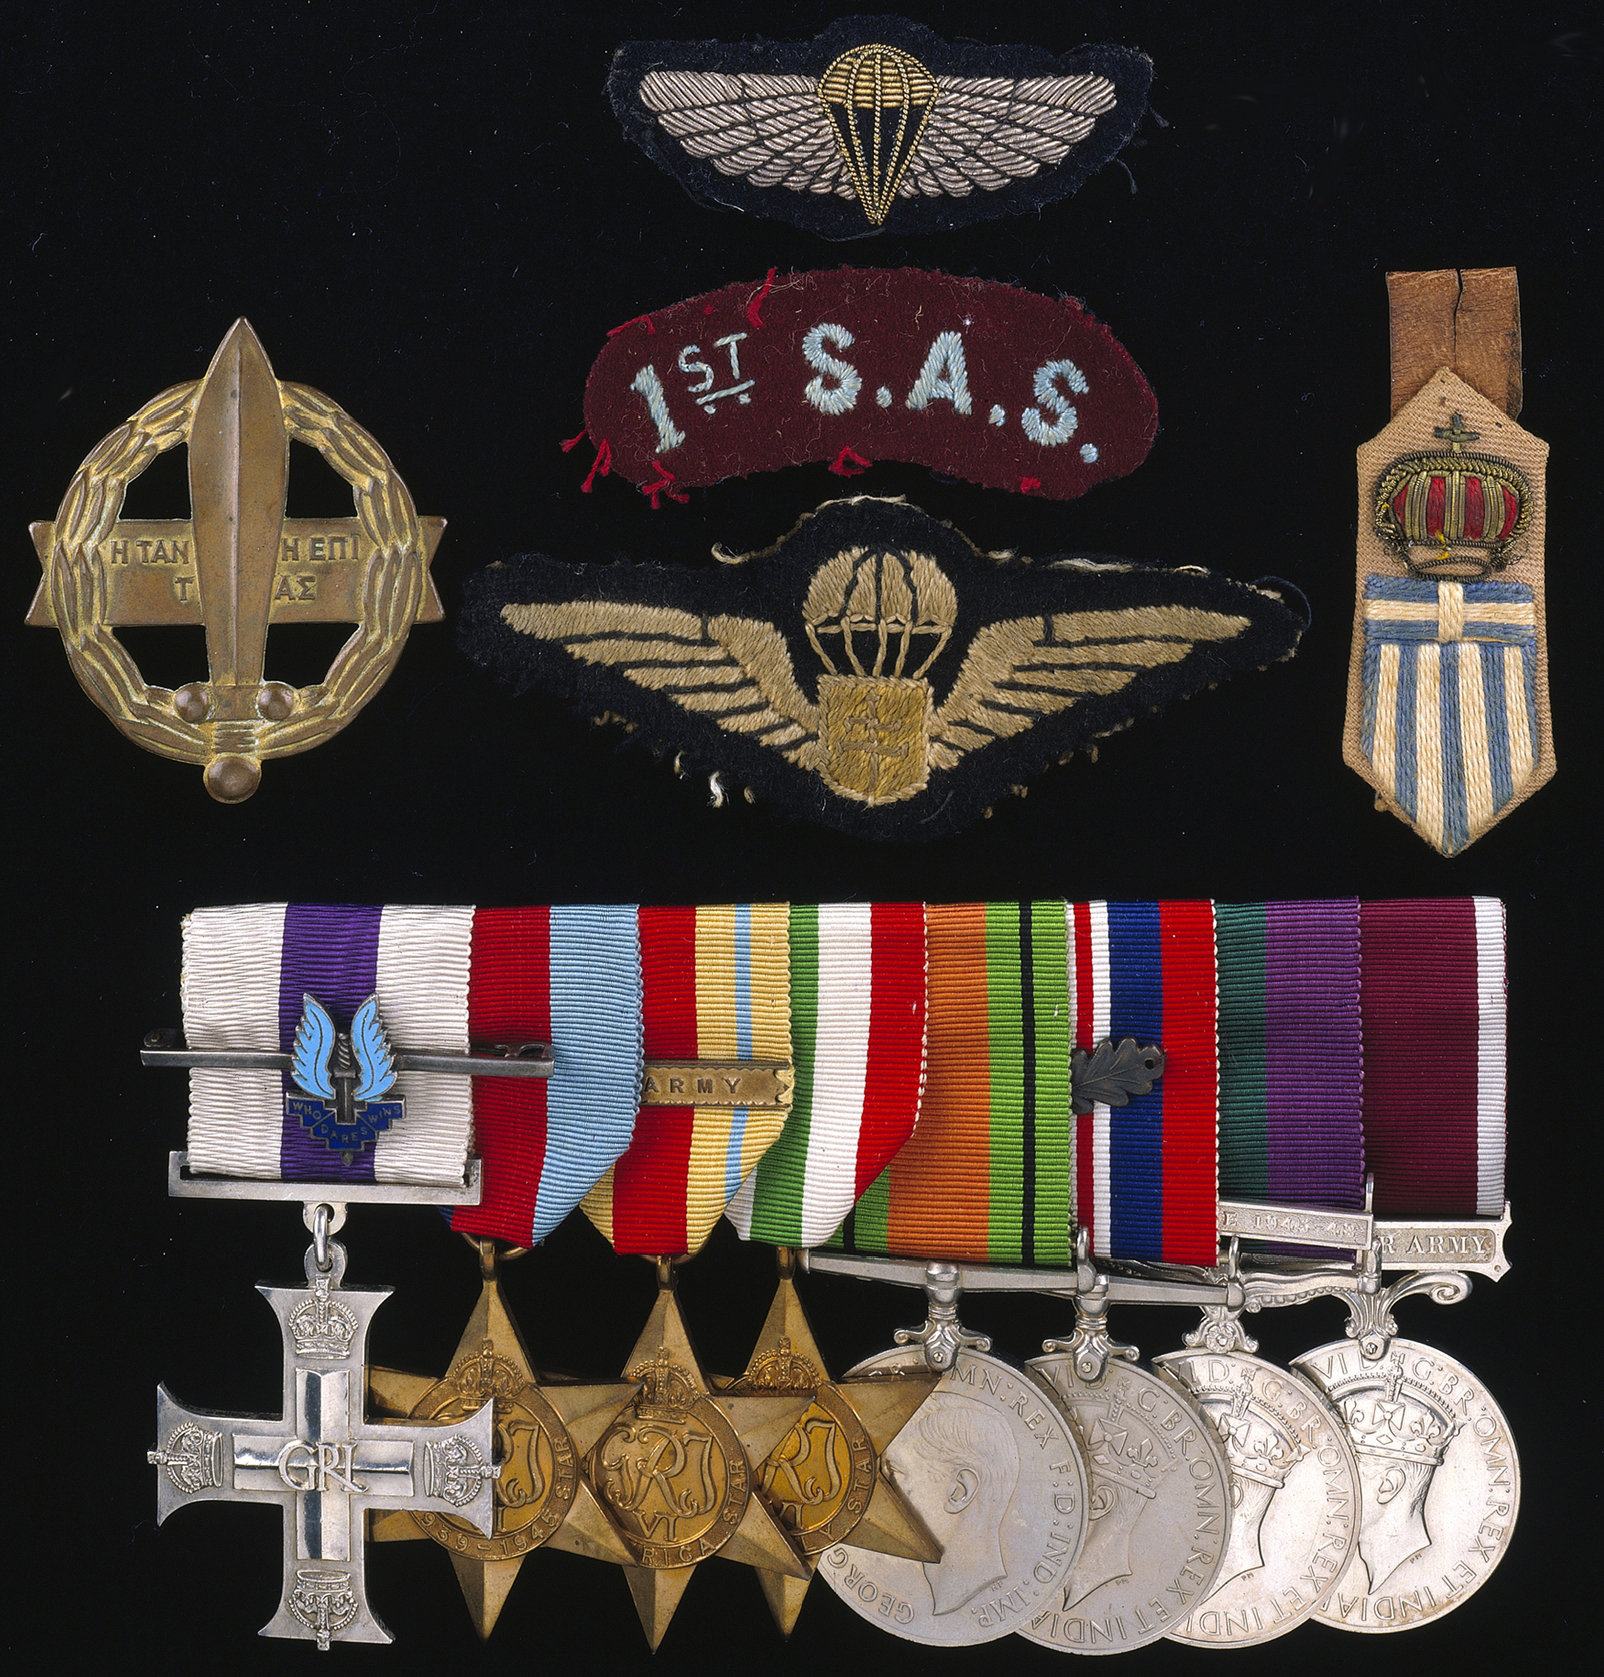 SAS Bill Cumper medal group